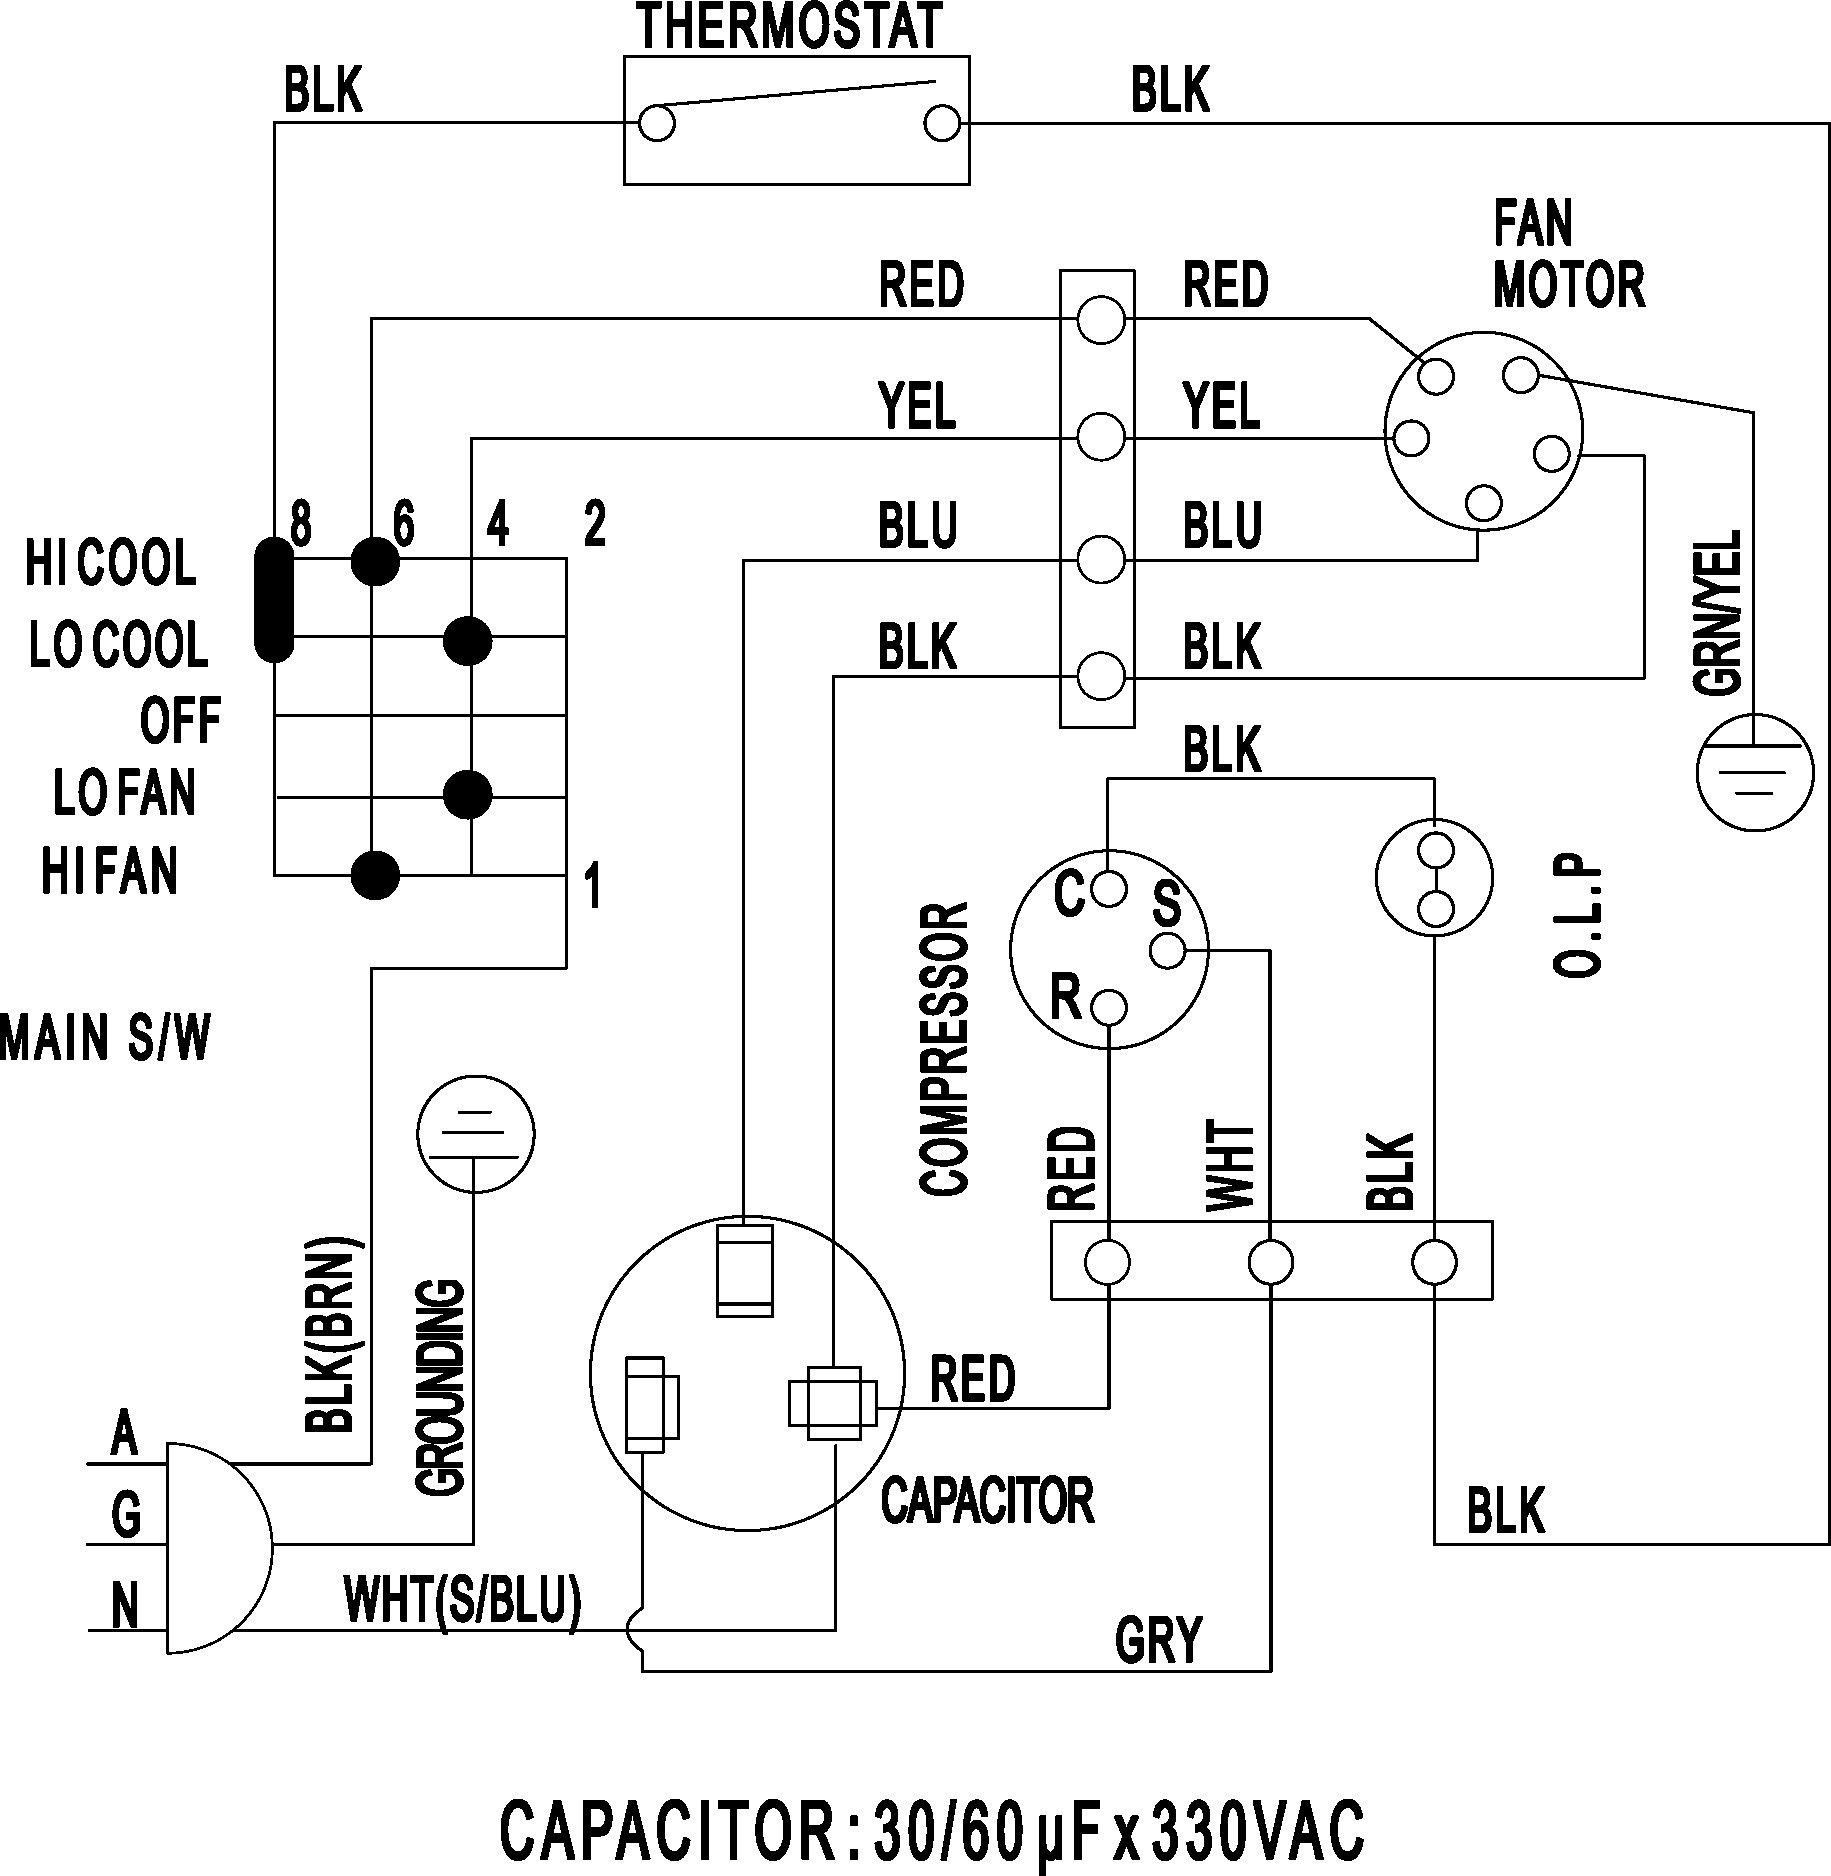 unique fan relay wiring diagram hvac #diagram #diagramsample  #diagramtemplate #wiringdiagram #di… | ac wiring, electrical circuit diagram,  electrical wiring diagram  pinterest